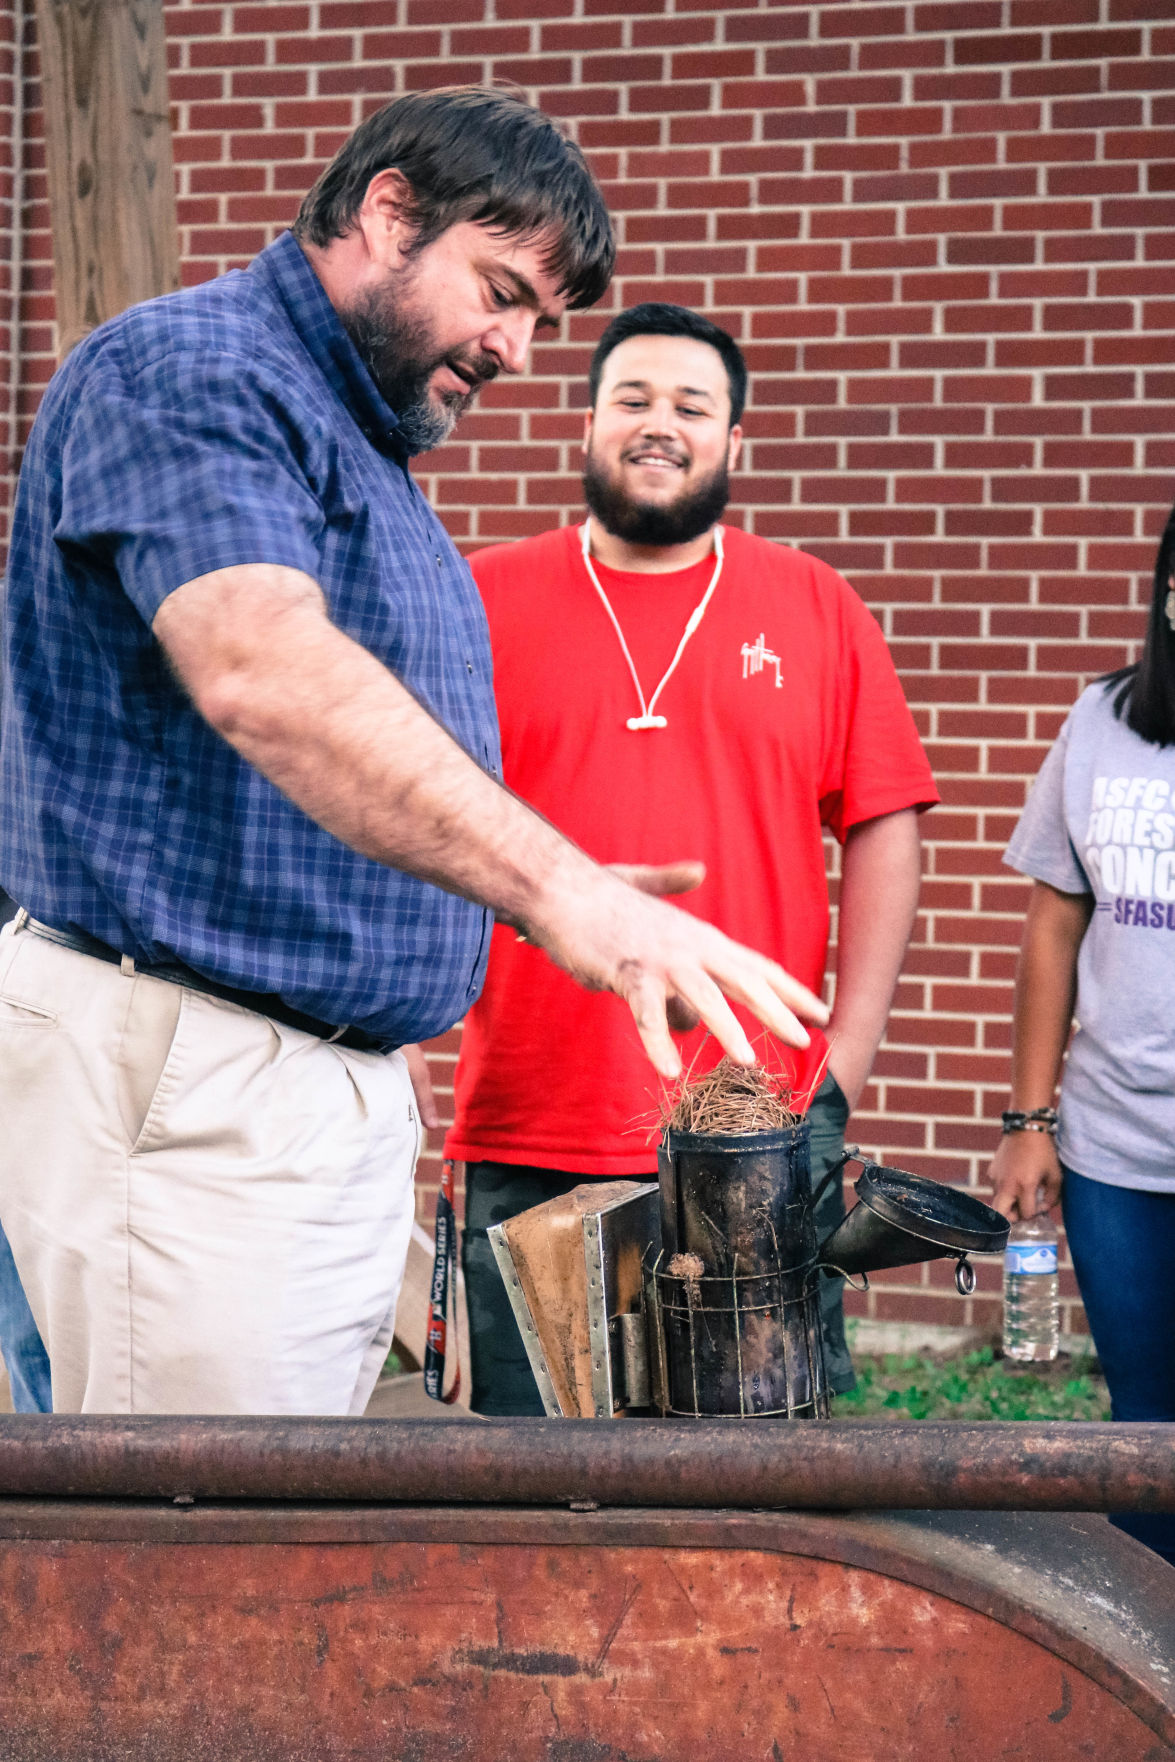 Club focuses on bee education and bringing more hives to campus